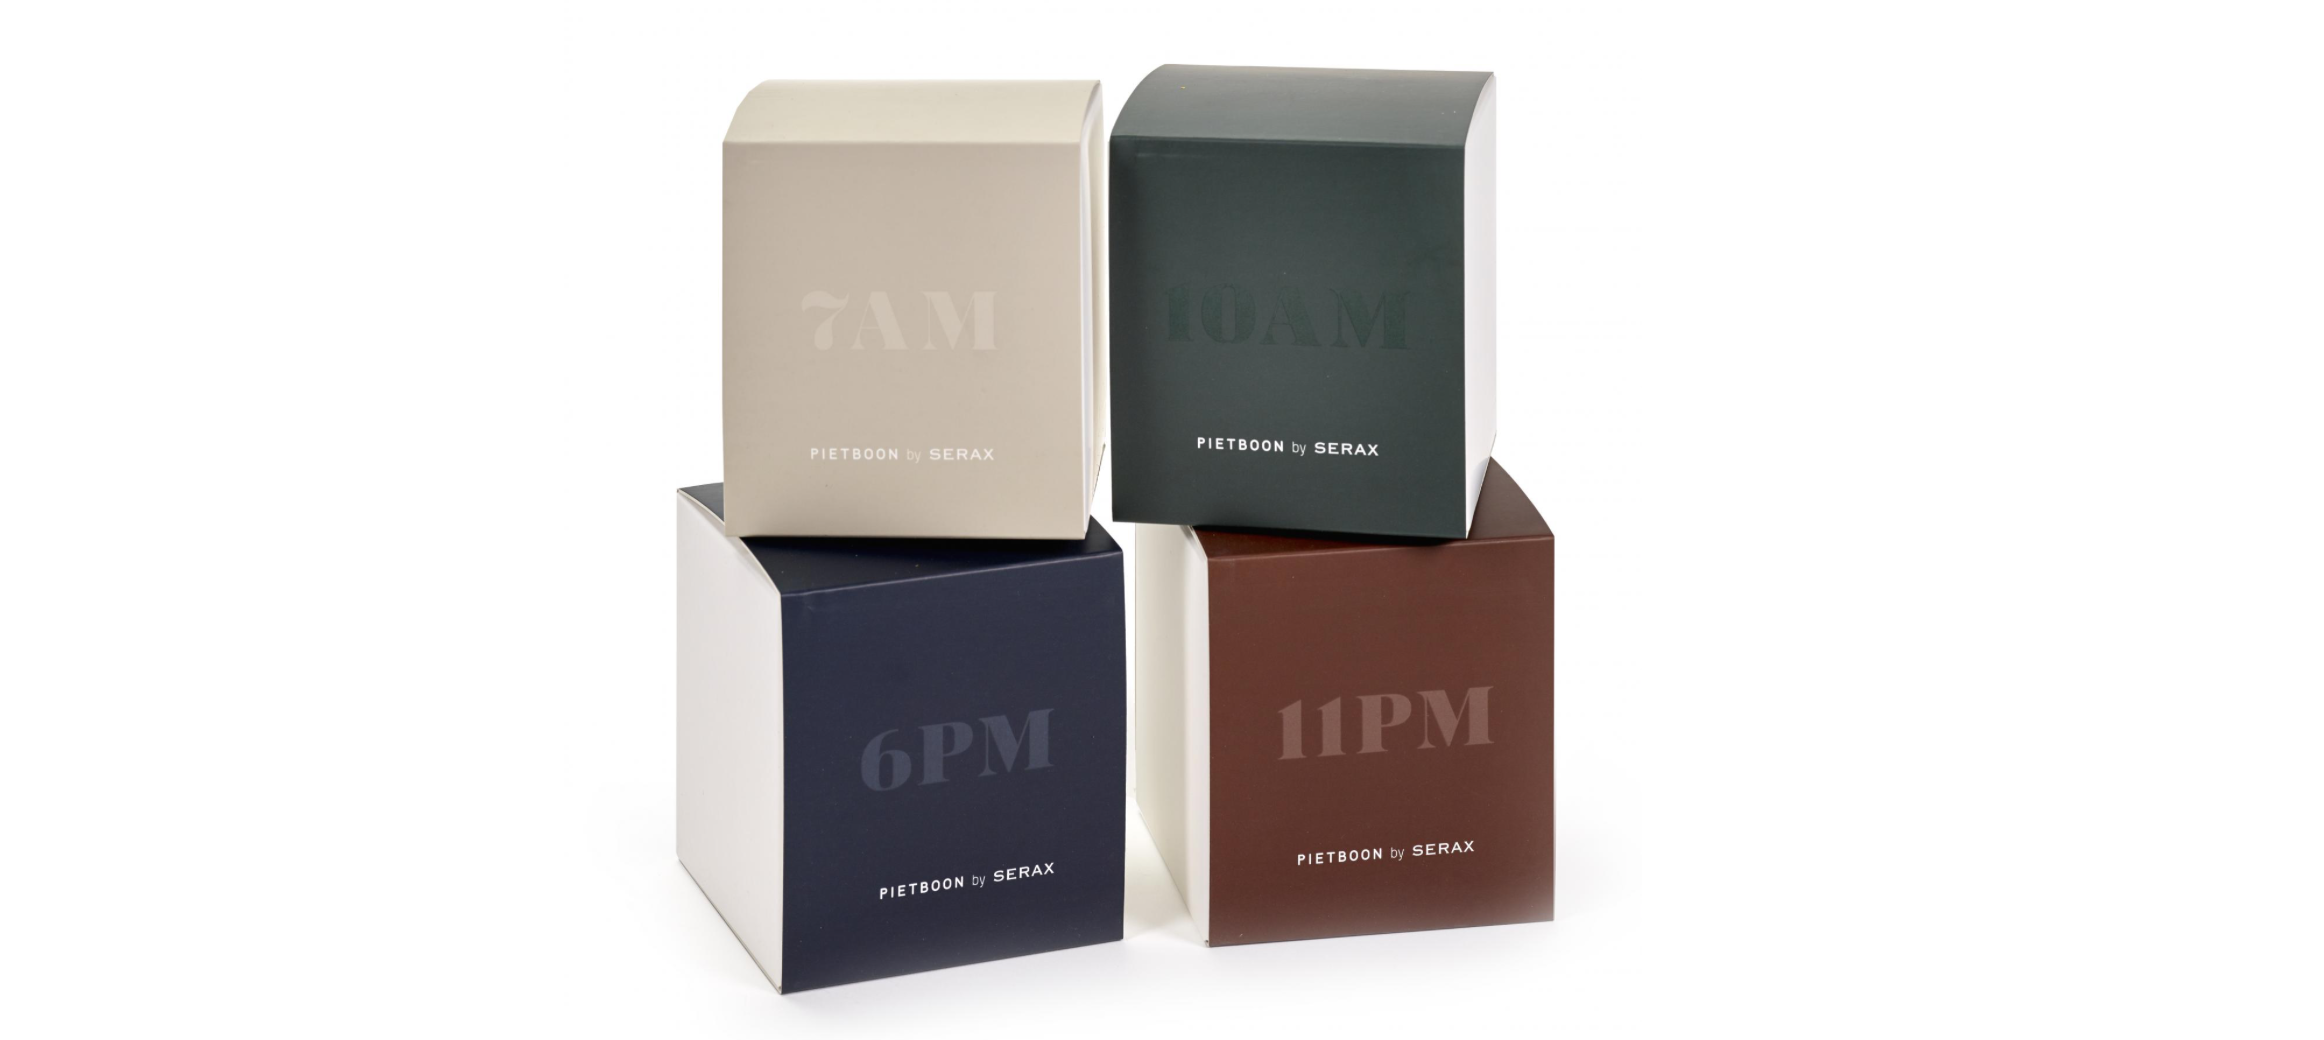 Piet Boon scented candles for Serax